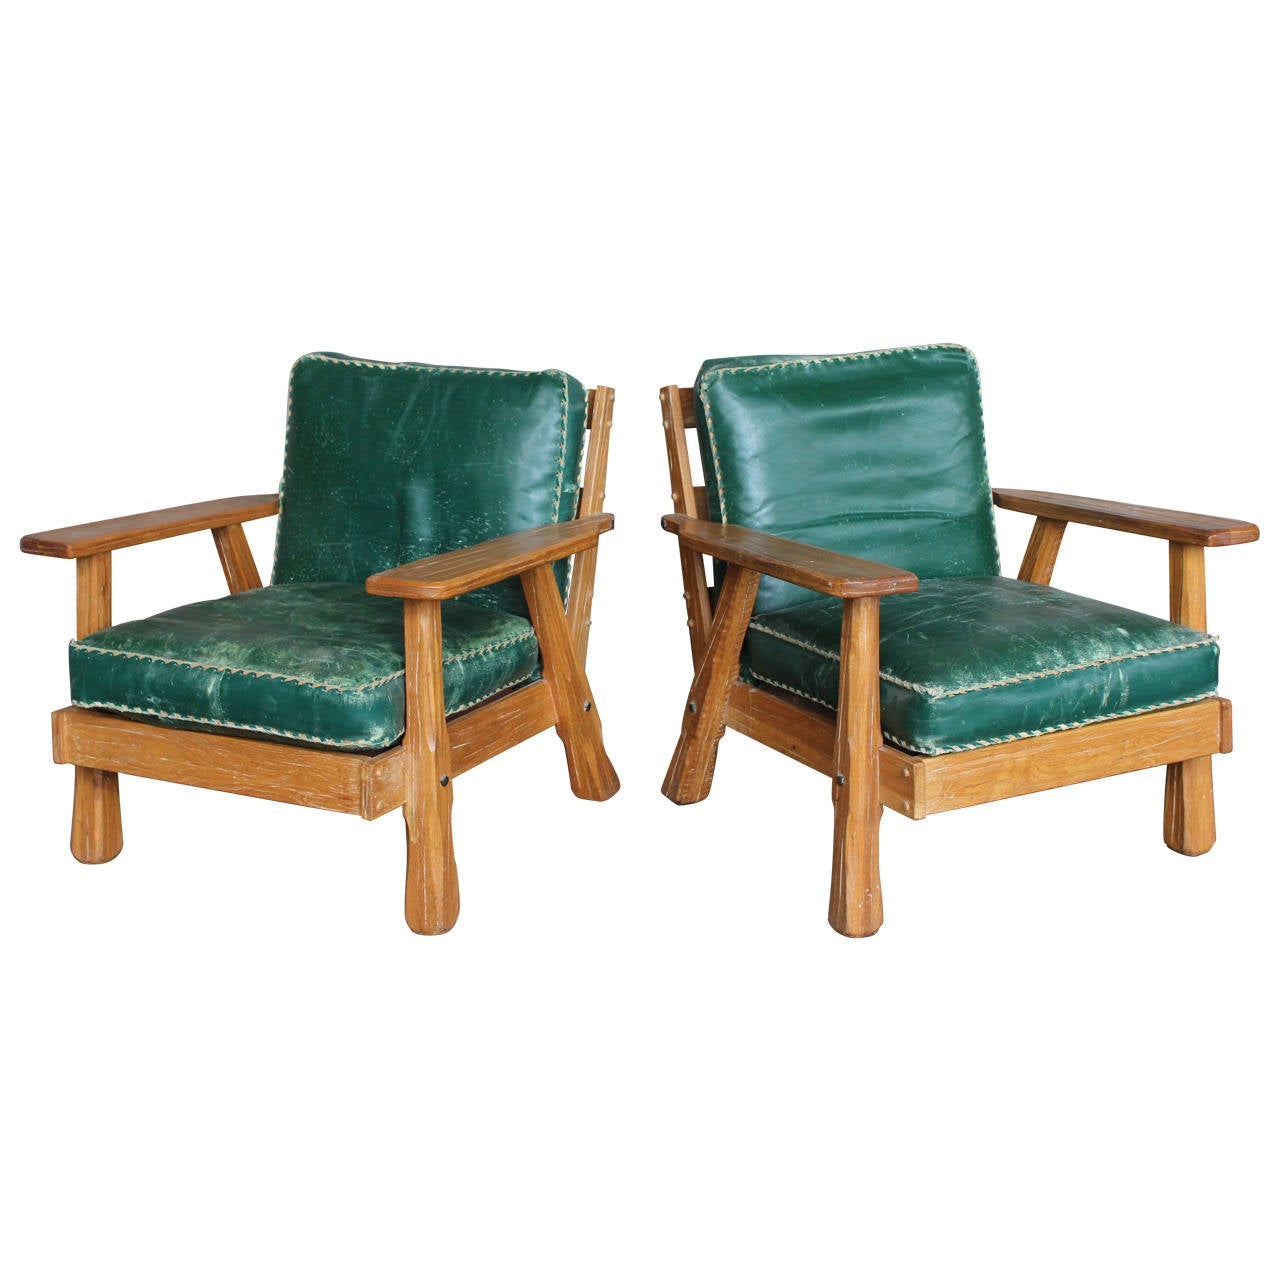 1950 S Wood Furniture ~ S leather and wood lounge chairs by ranch oak at stdibs